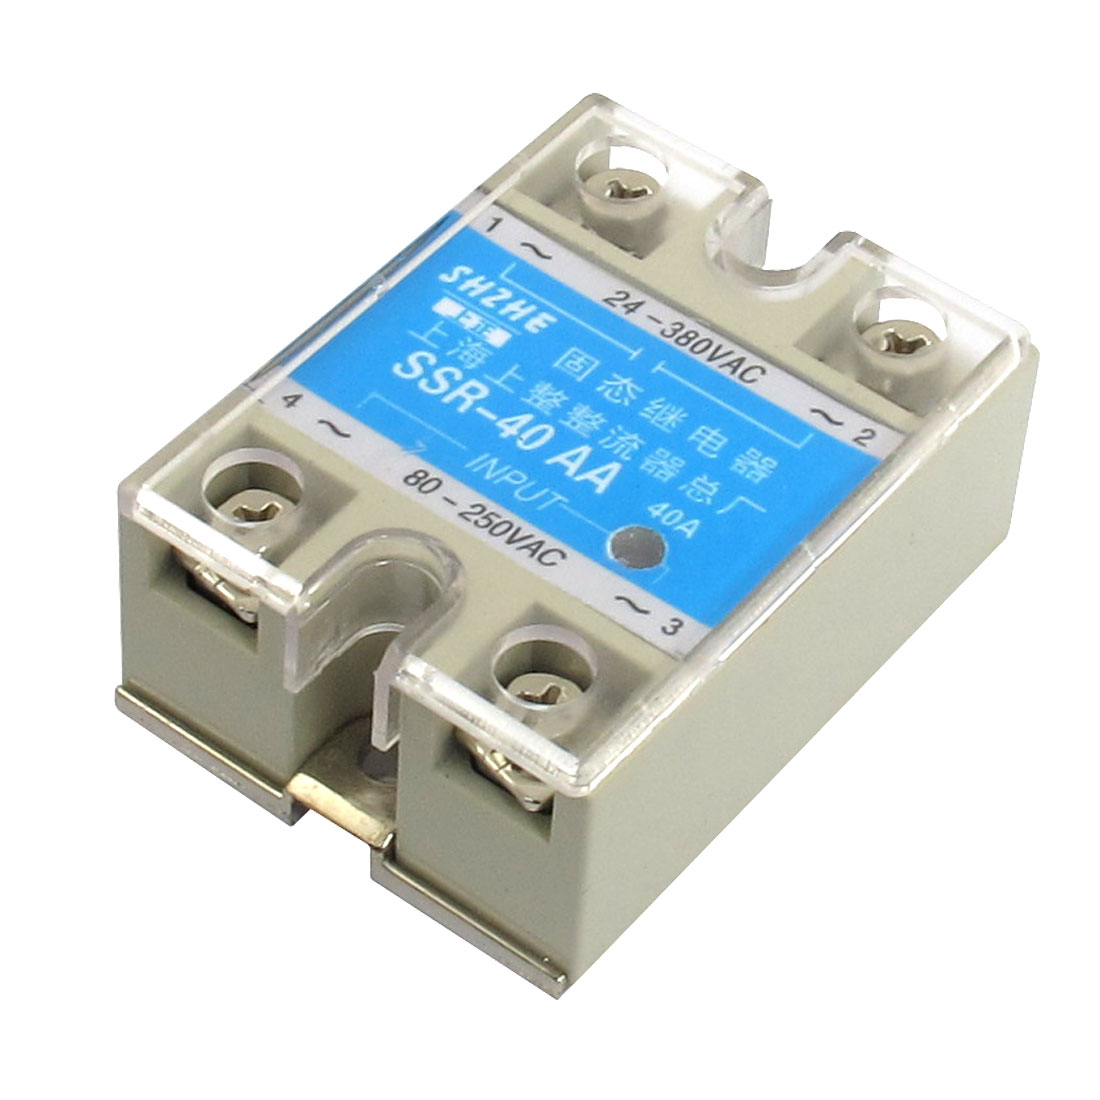 SSR-40AA AC to AC Covered Solid State Module Relay 80-250V AC 24-380V AC